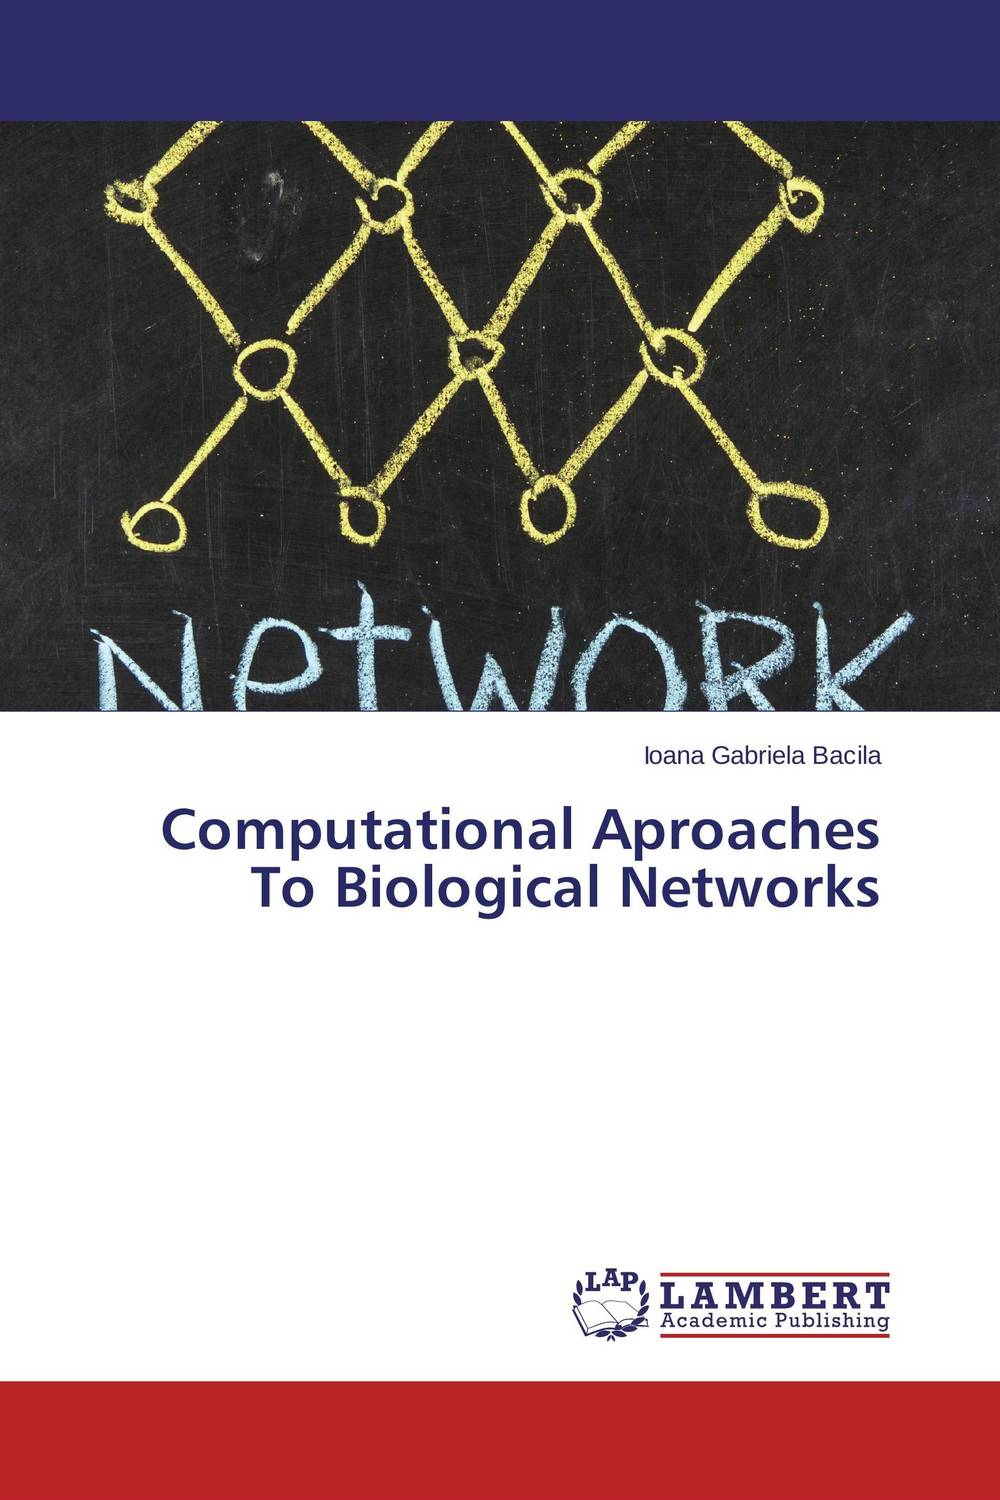 Computational Aproaches To Biological Networks dynamic biological networks – stomatogast